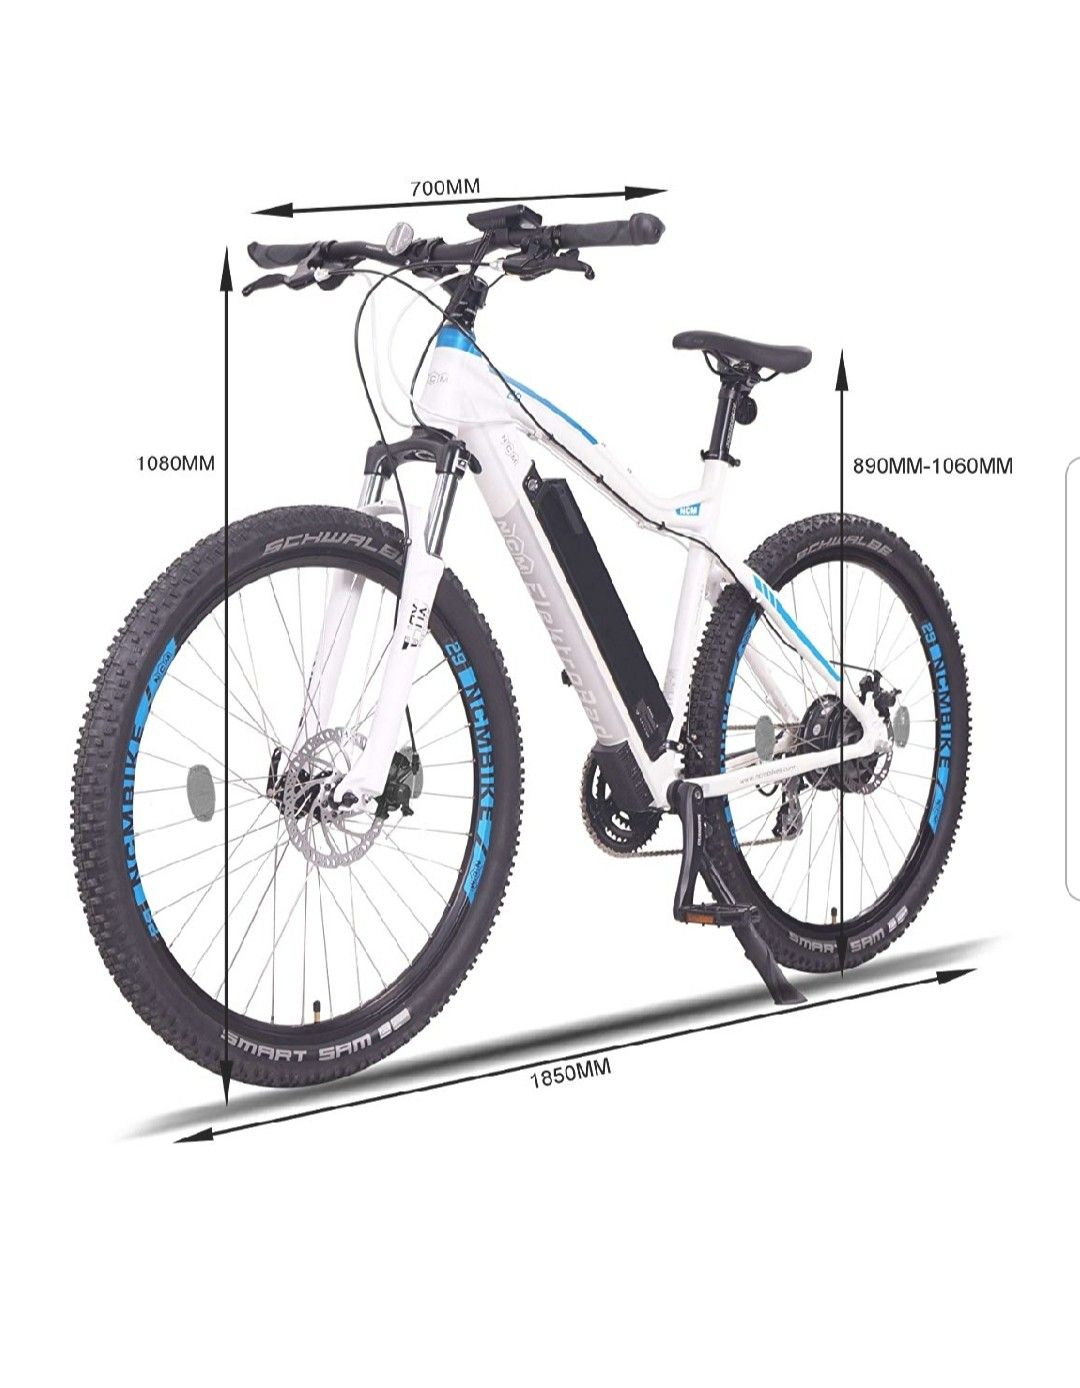 Another Great Value E Bike From Ncm Check My List Of Best